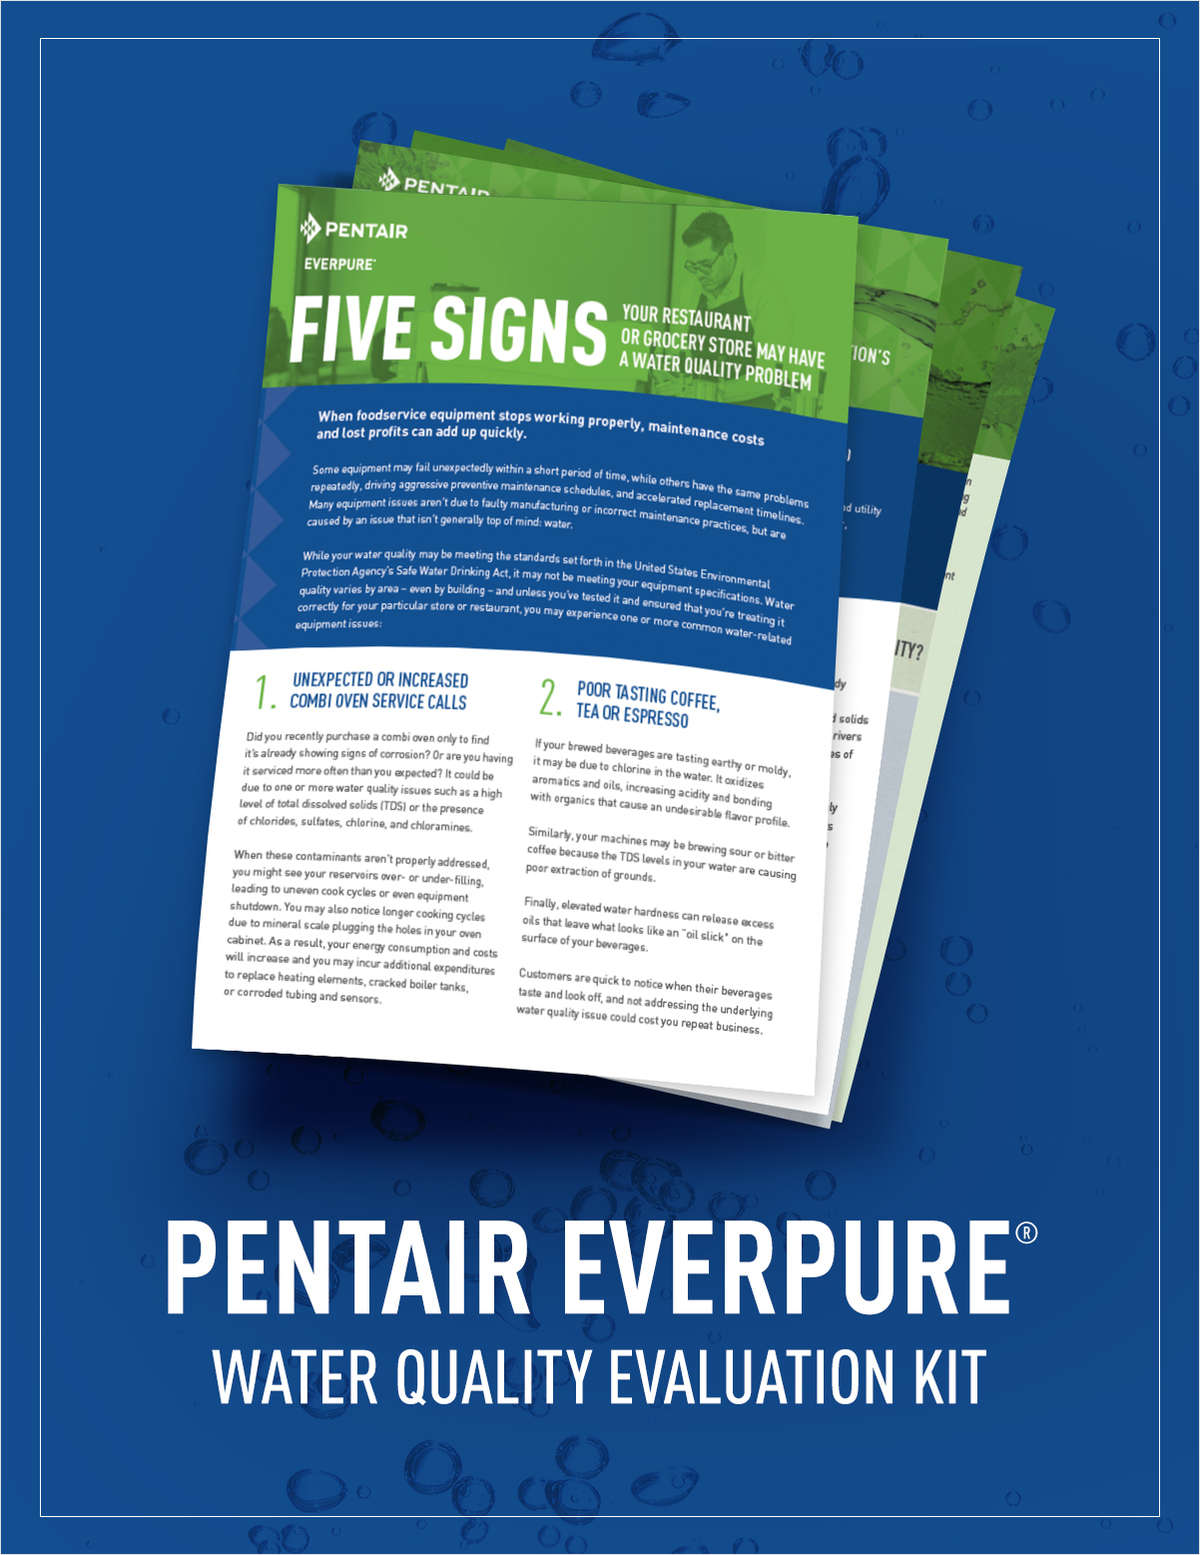 Pentair Everpure® Water Quality Evaluation Kit - Includes Free 7-Way Water Test Kit